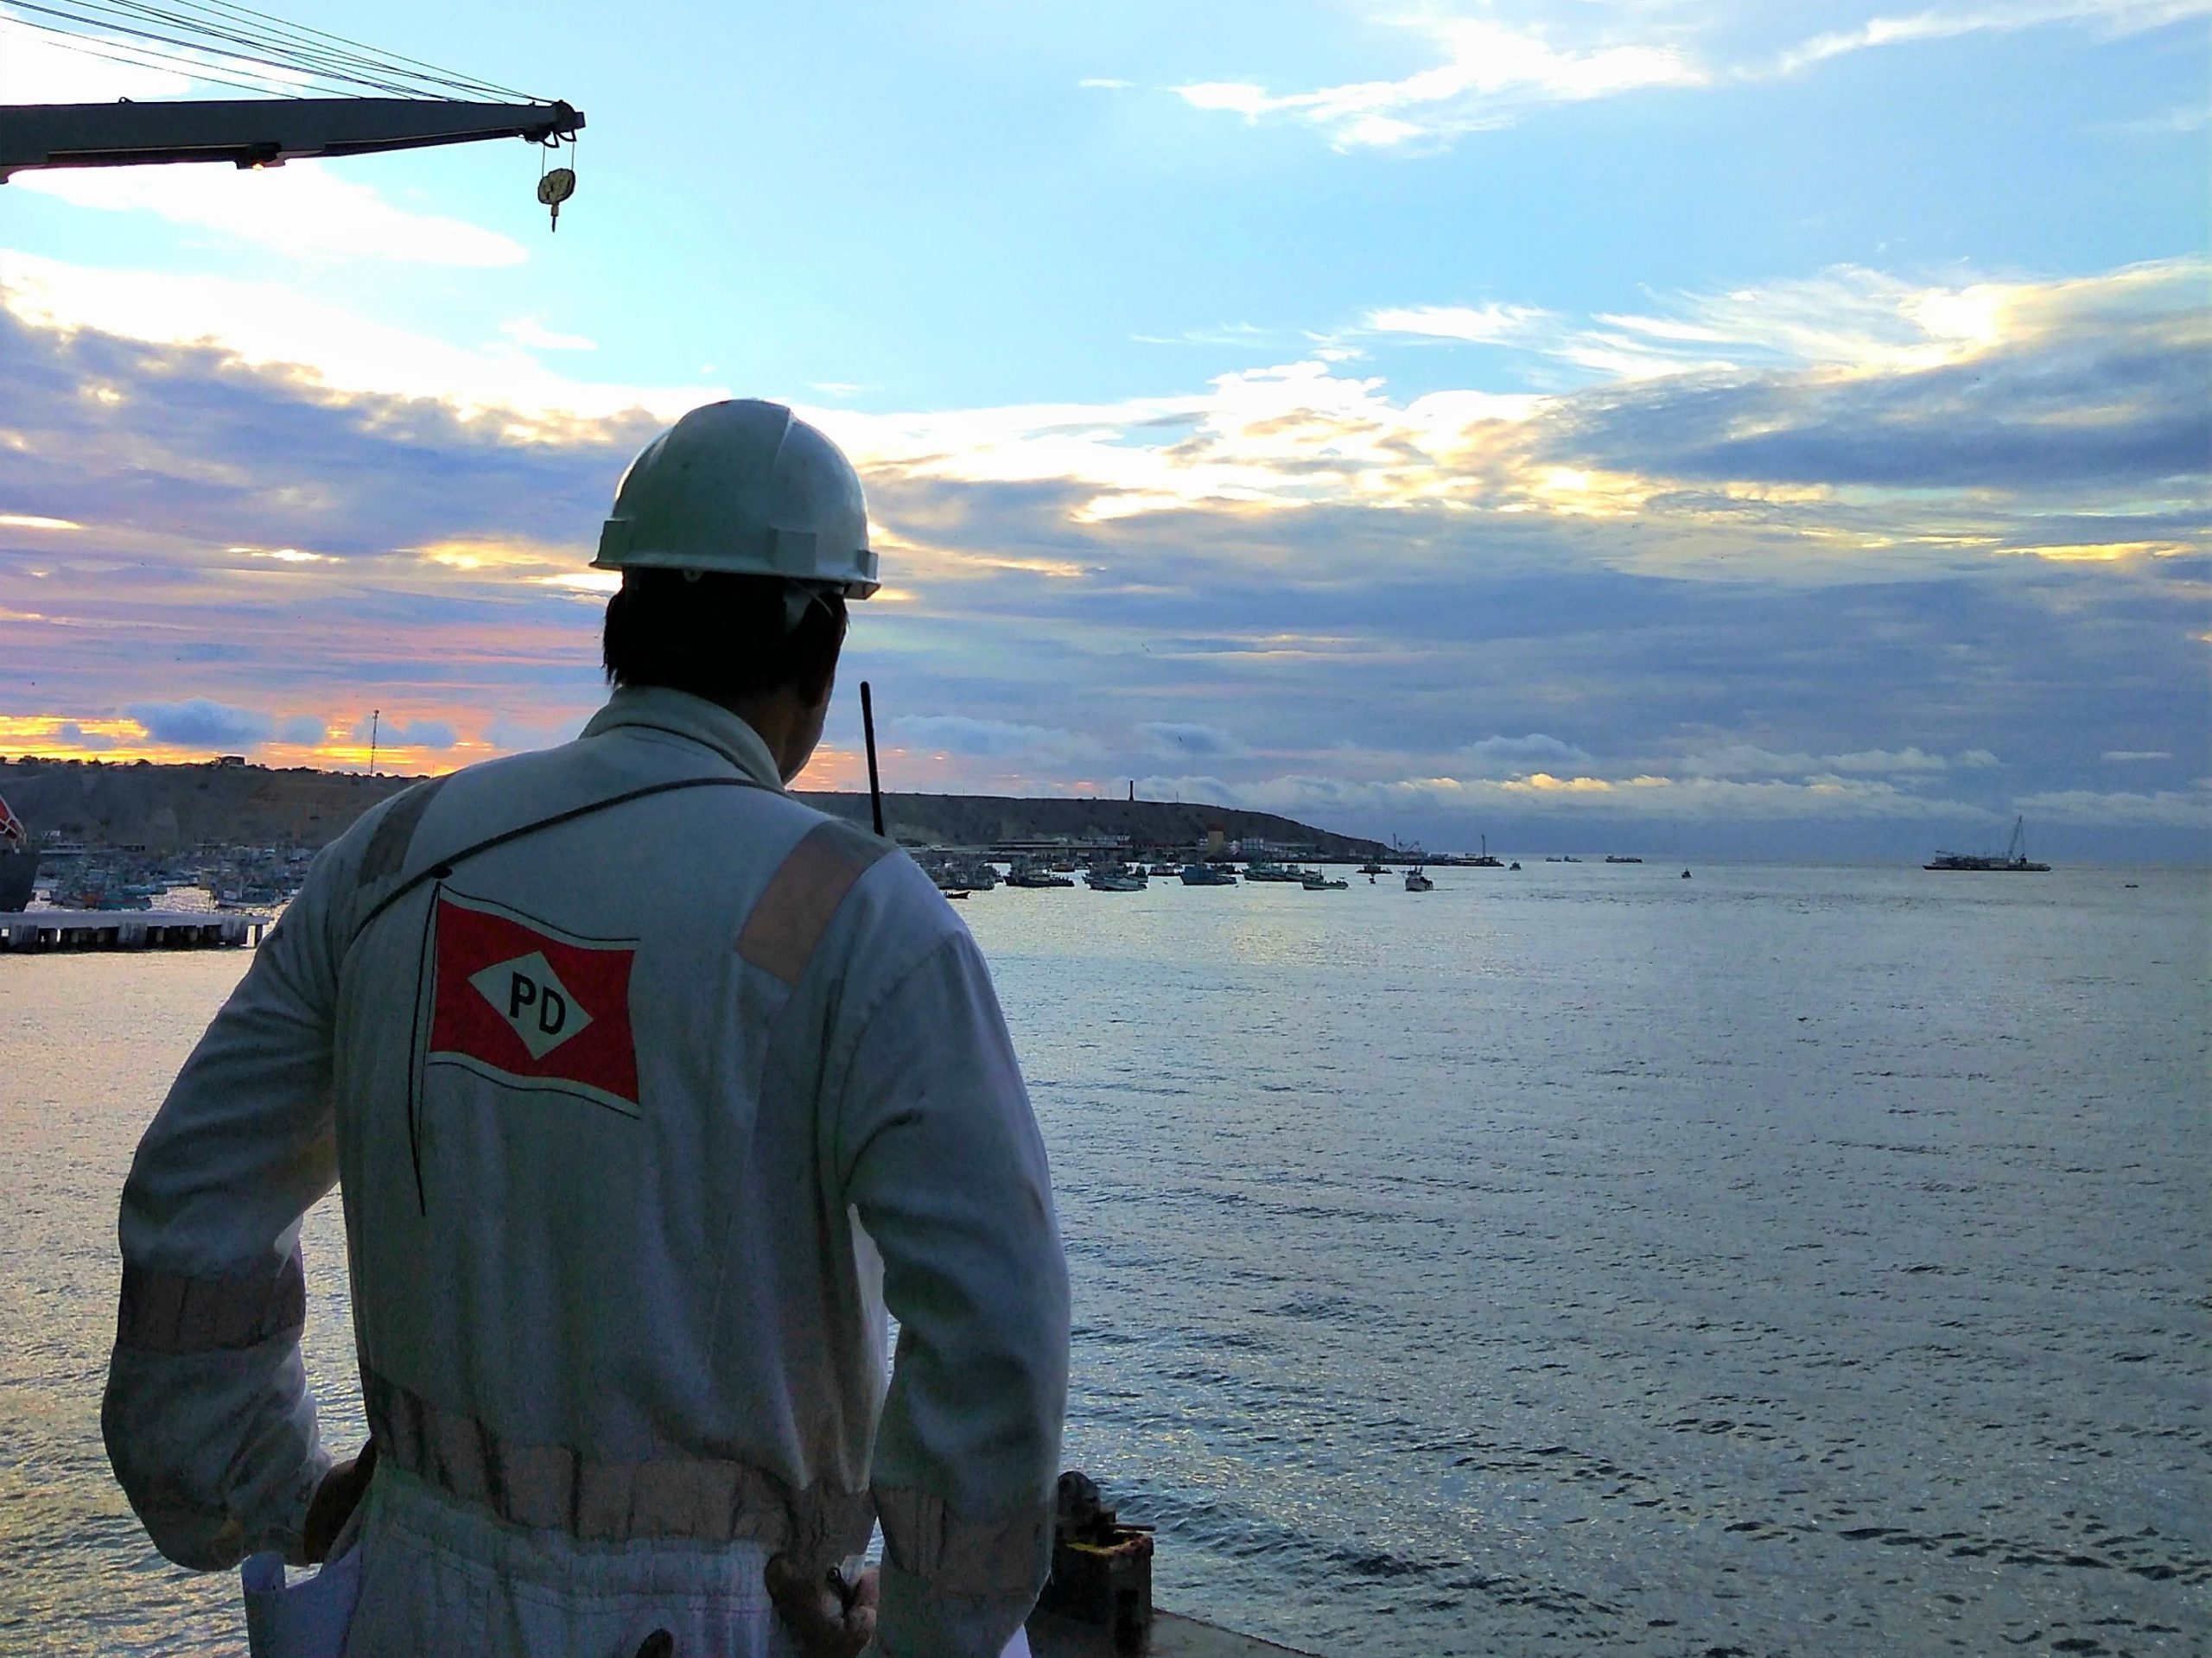 Philippines Support of Neptune Declaration Highlights Vital Role of Seafarers